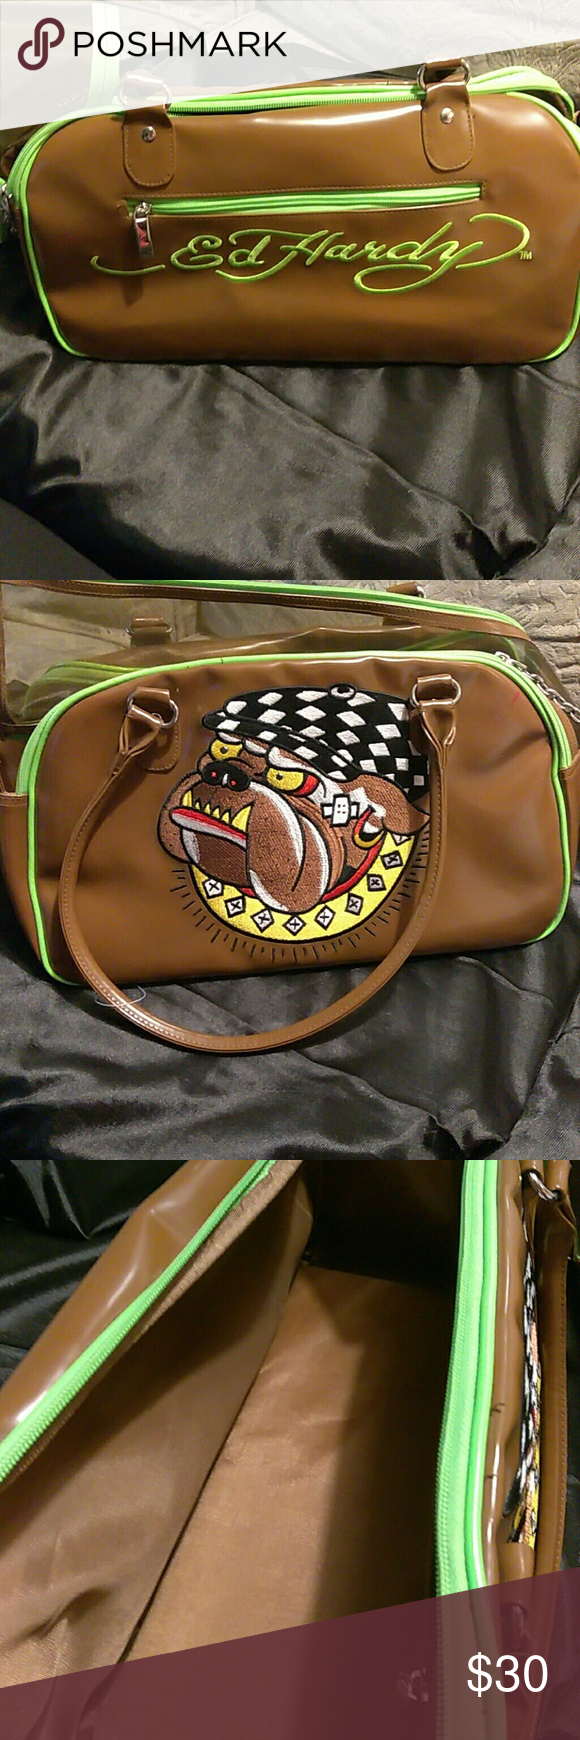 Ed Hardy pet carrier Beautiful brown and green Ed Hardy Bags 7bc1c4a8c1